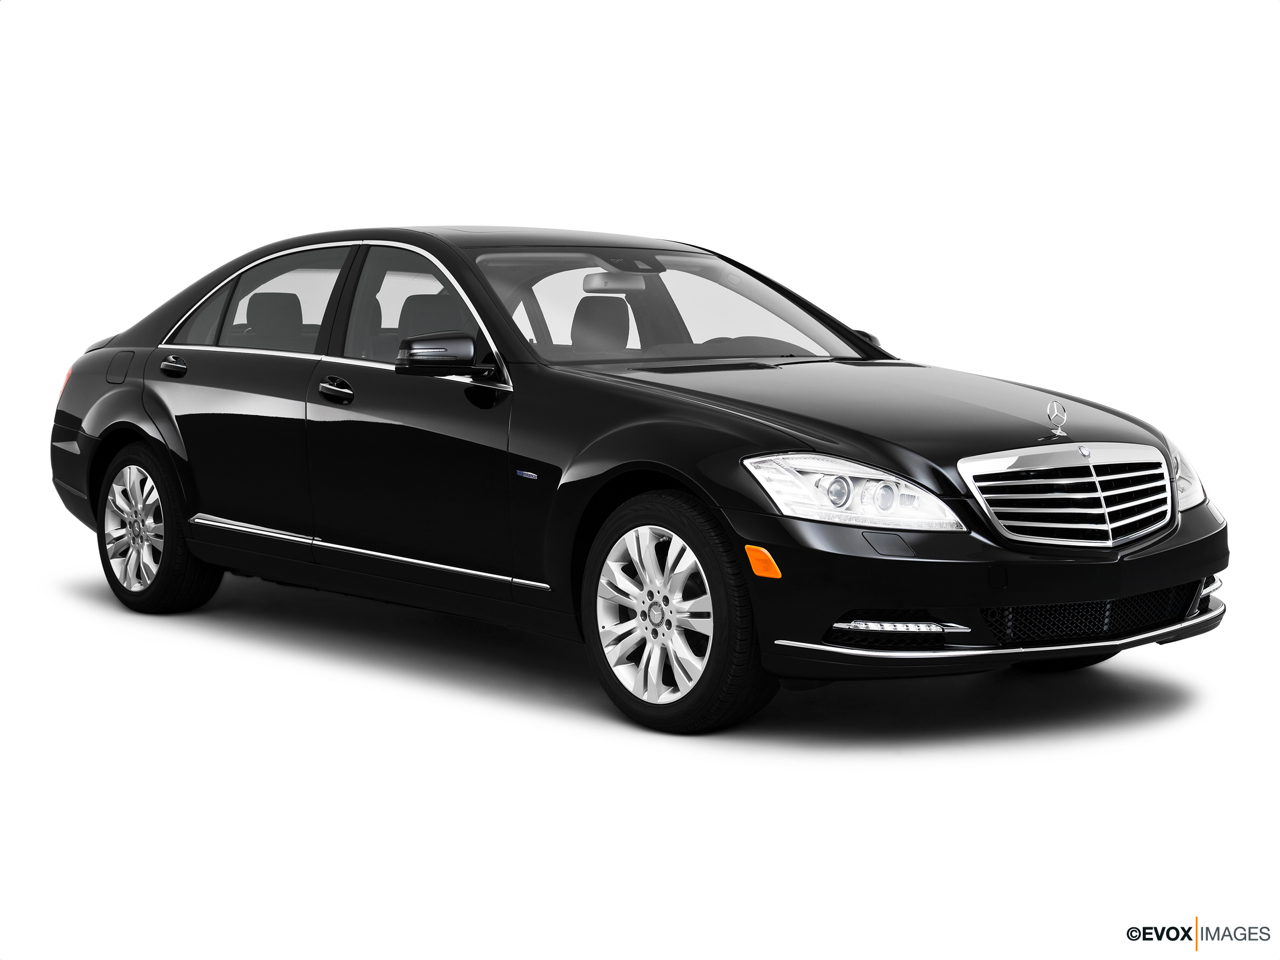 2010 Mercedes-Benz S-Class Hybrid S400 158 - no description